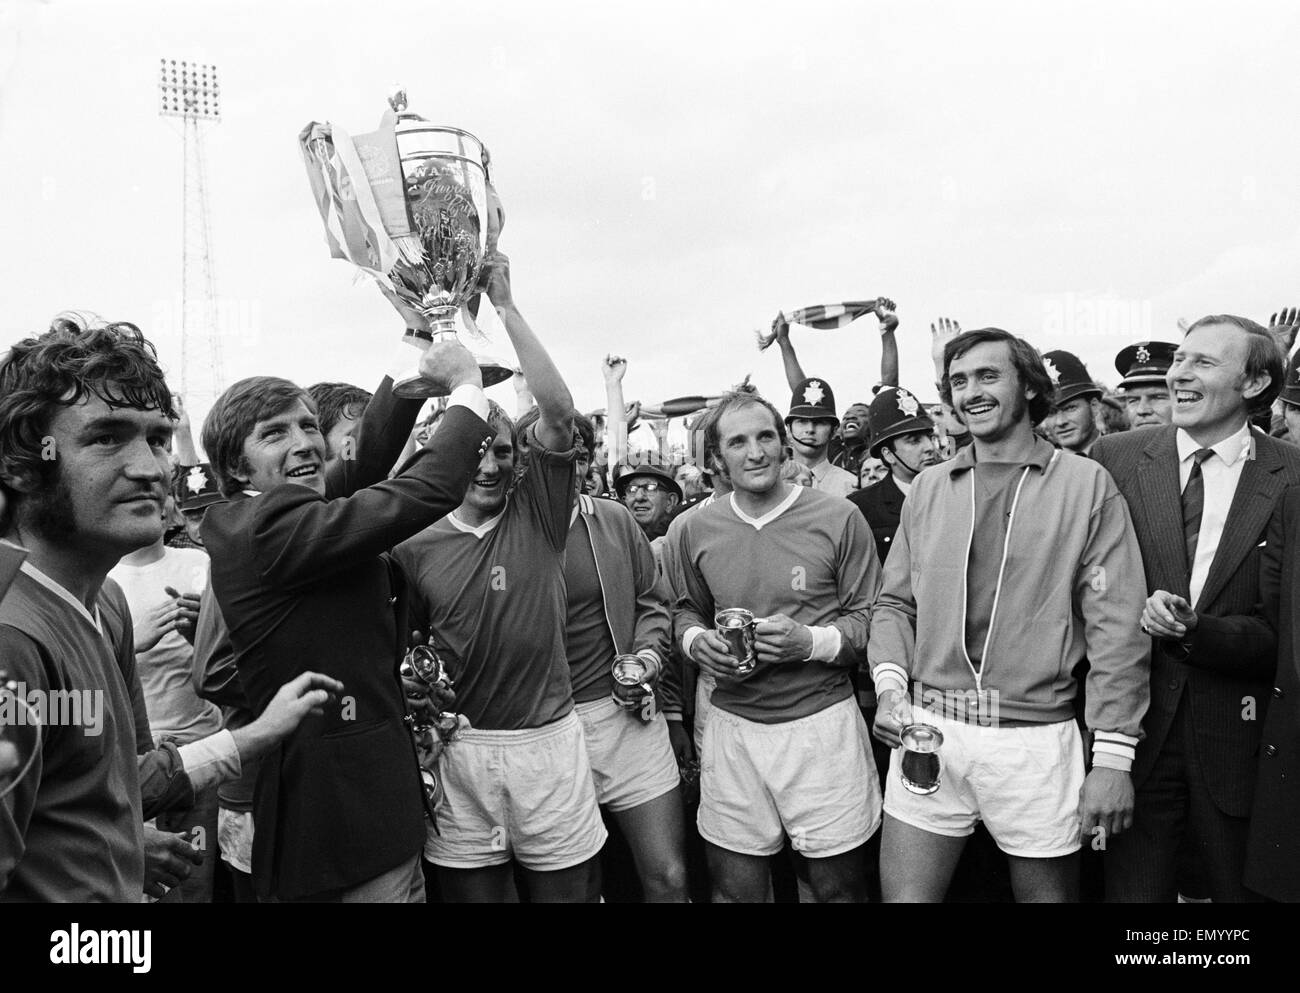 Watney Mann Cup match at the Eastville Stadium. Bristol Rovers v Sheffield United. The Bristol Rovers team celebrate - Stock Image